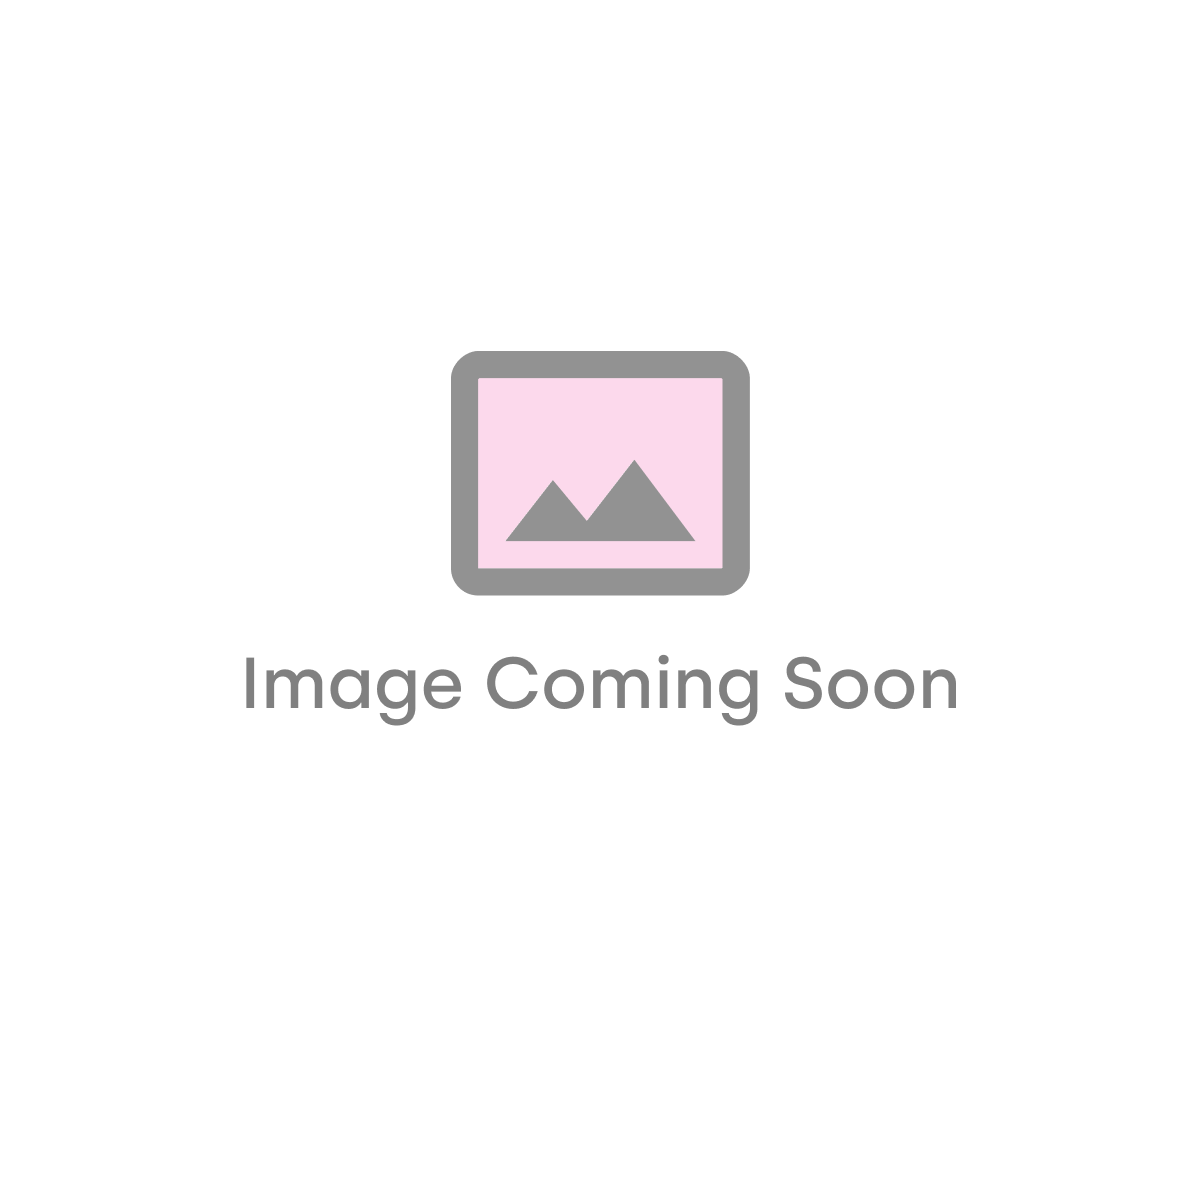 Moods Bathrooms to Love Solarna L-Shape 1700 x 700mm Shower Bath inc. Screen - Right Hand (13360)